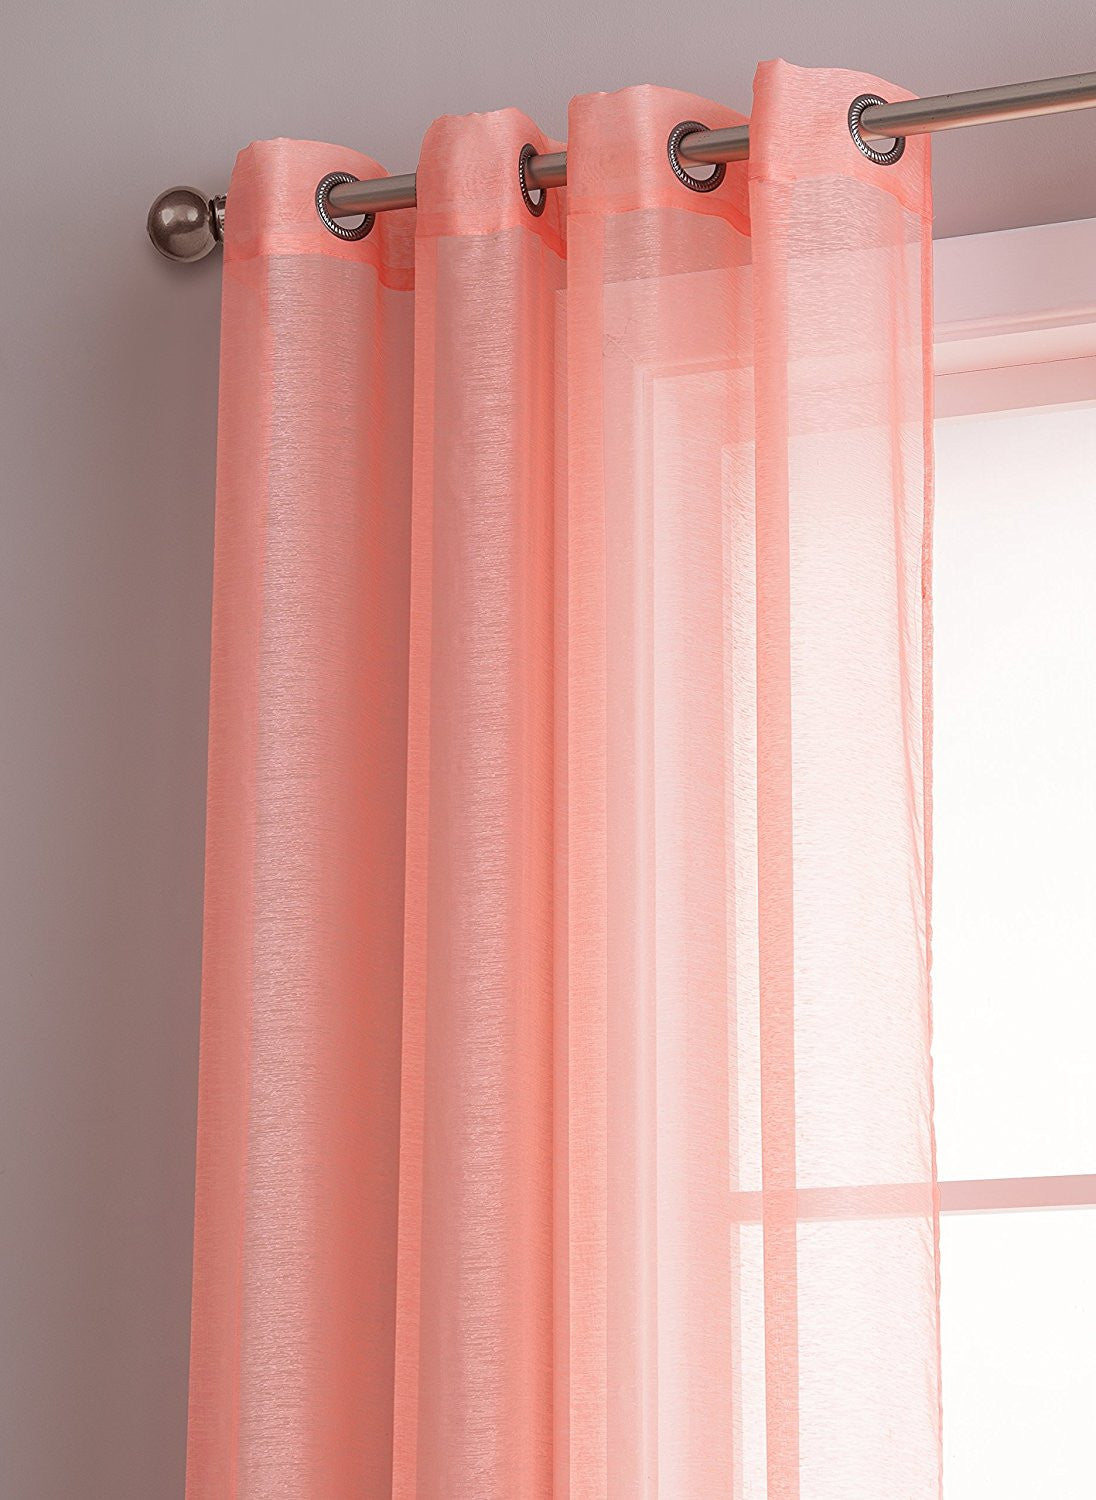 ... Warm Home Designs 1 Pair Of Coral Pink Voile Sheer Window Curtains With  Grommet Top ...